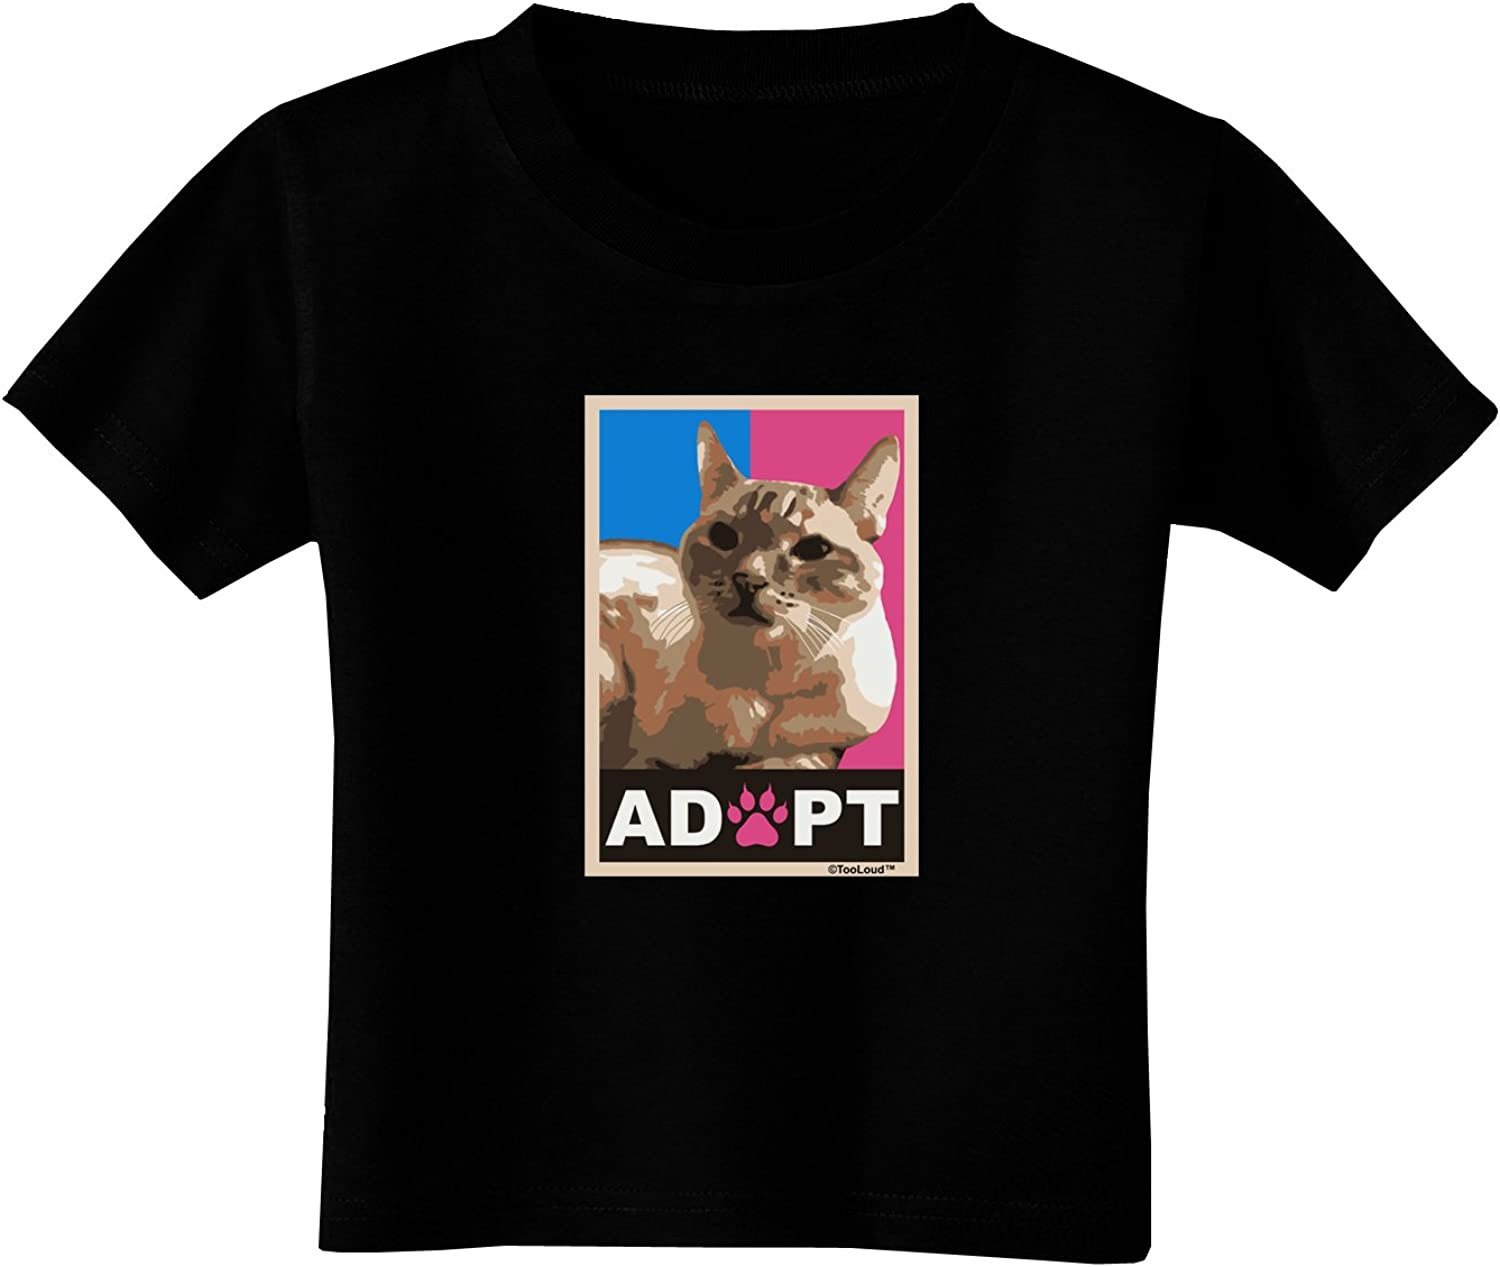 TOOLOUD Adopt Cute Kitty Poster Toddler T-Shirt Dark